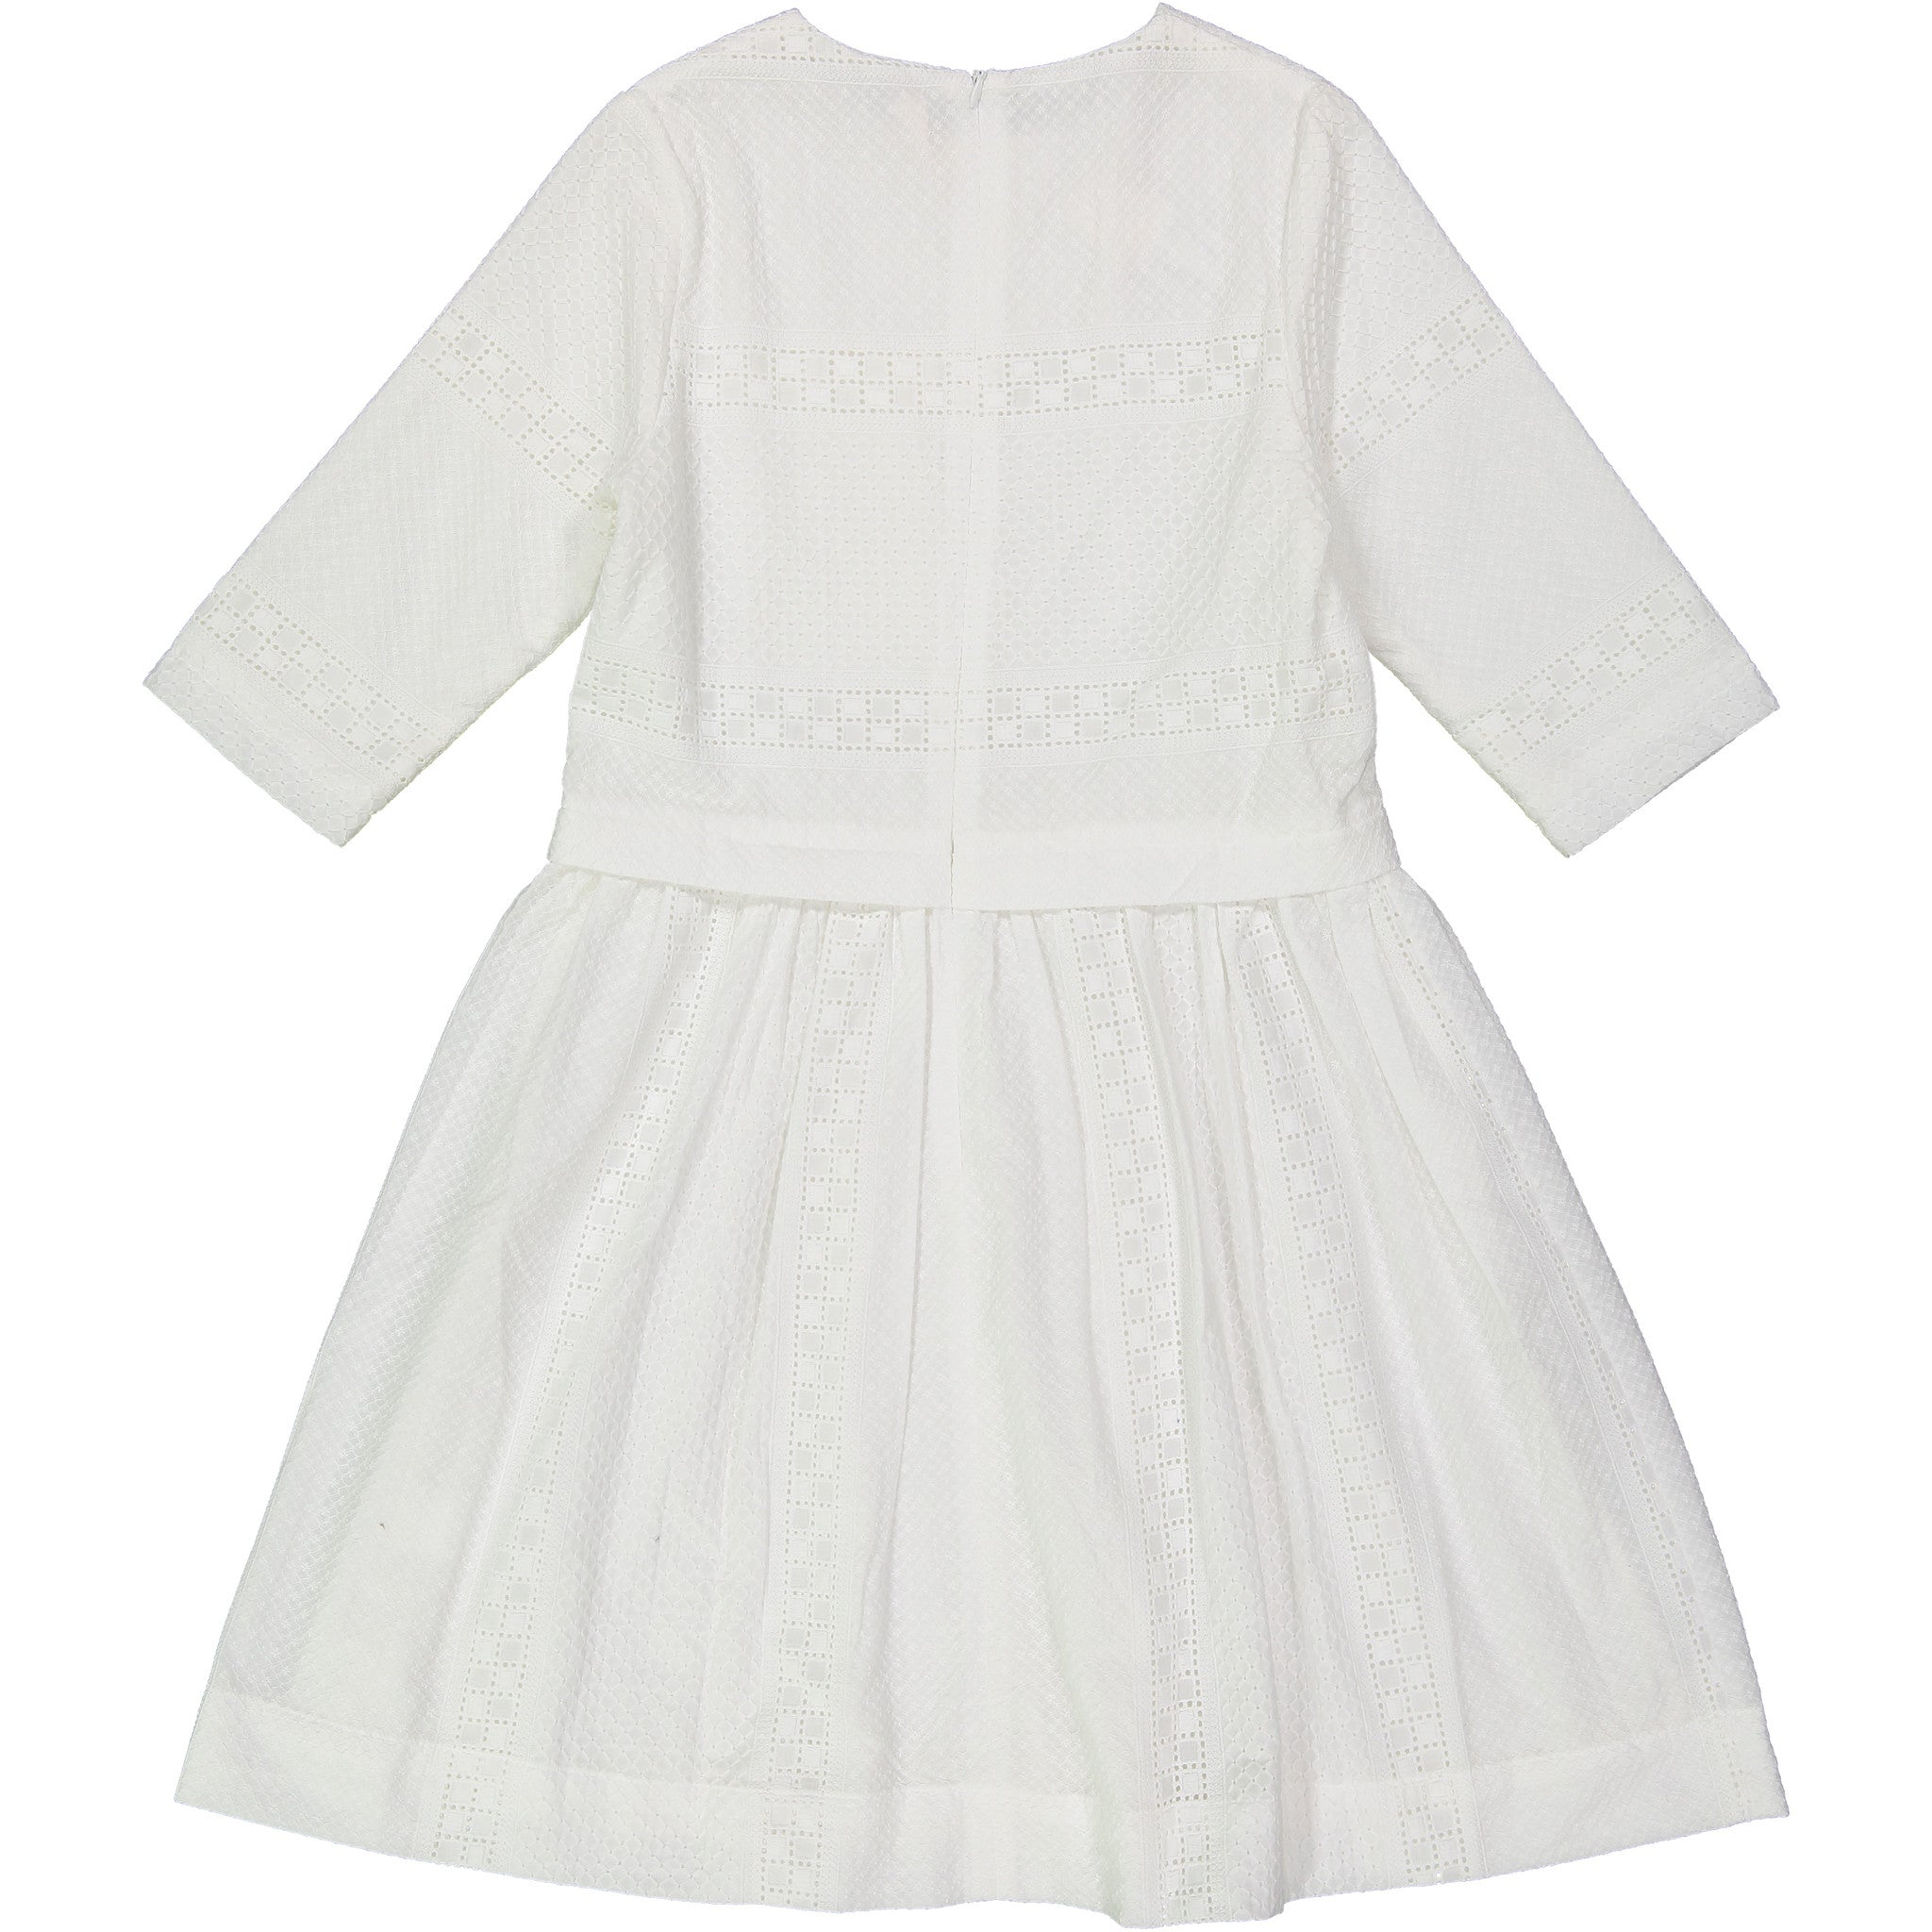 Ava & Lu The Froth Eyelet Dress